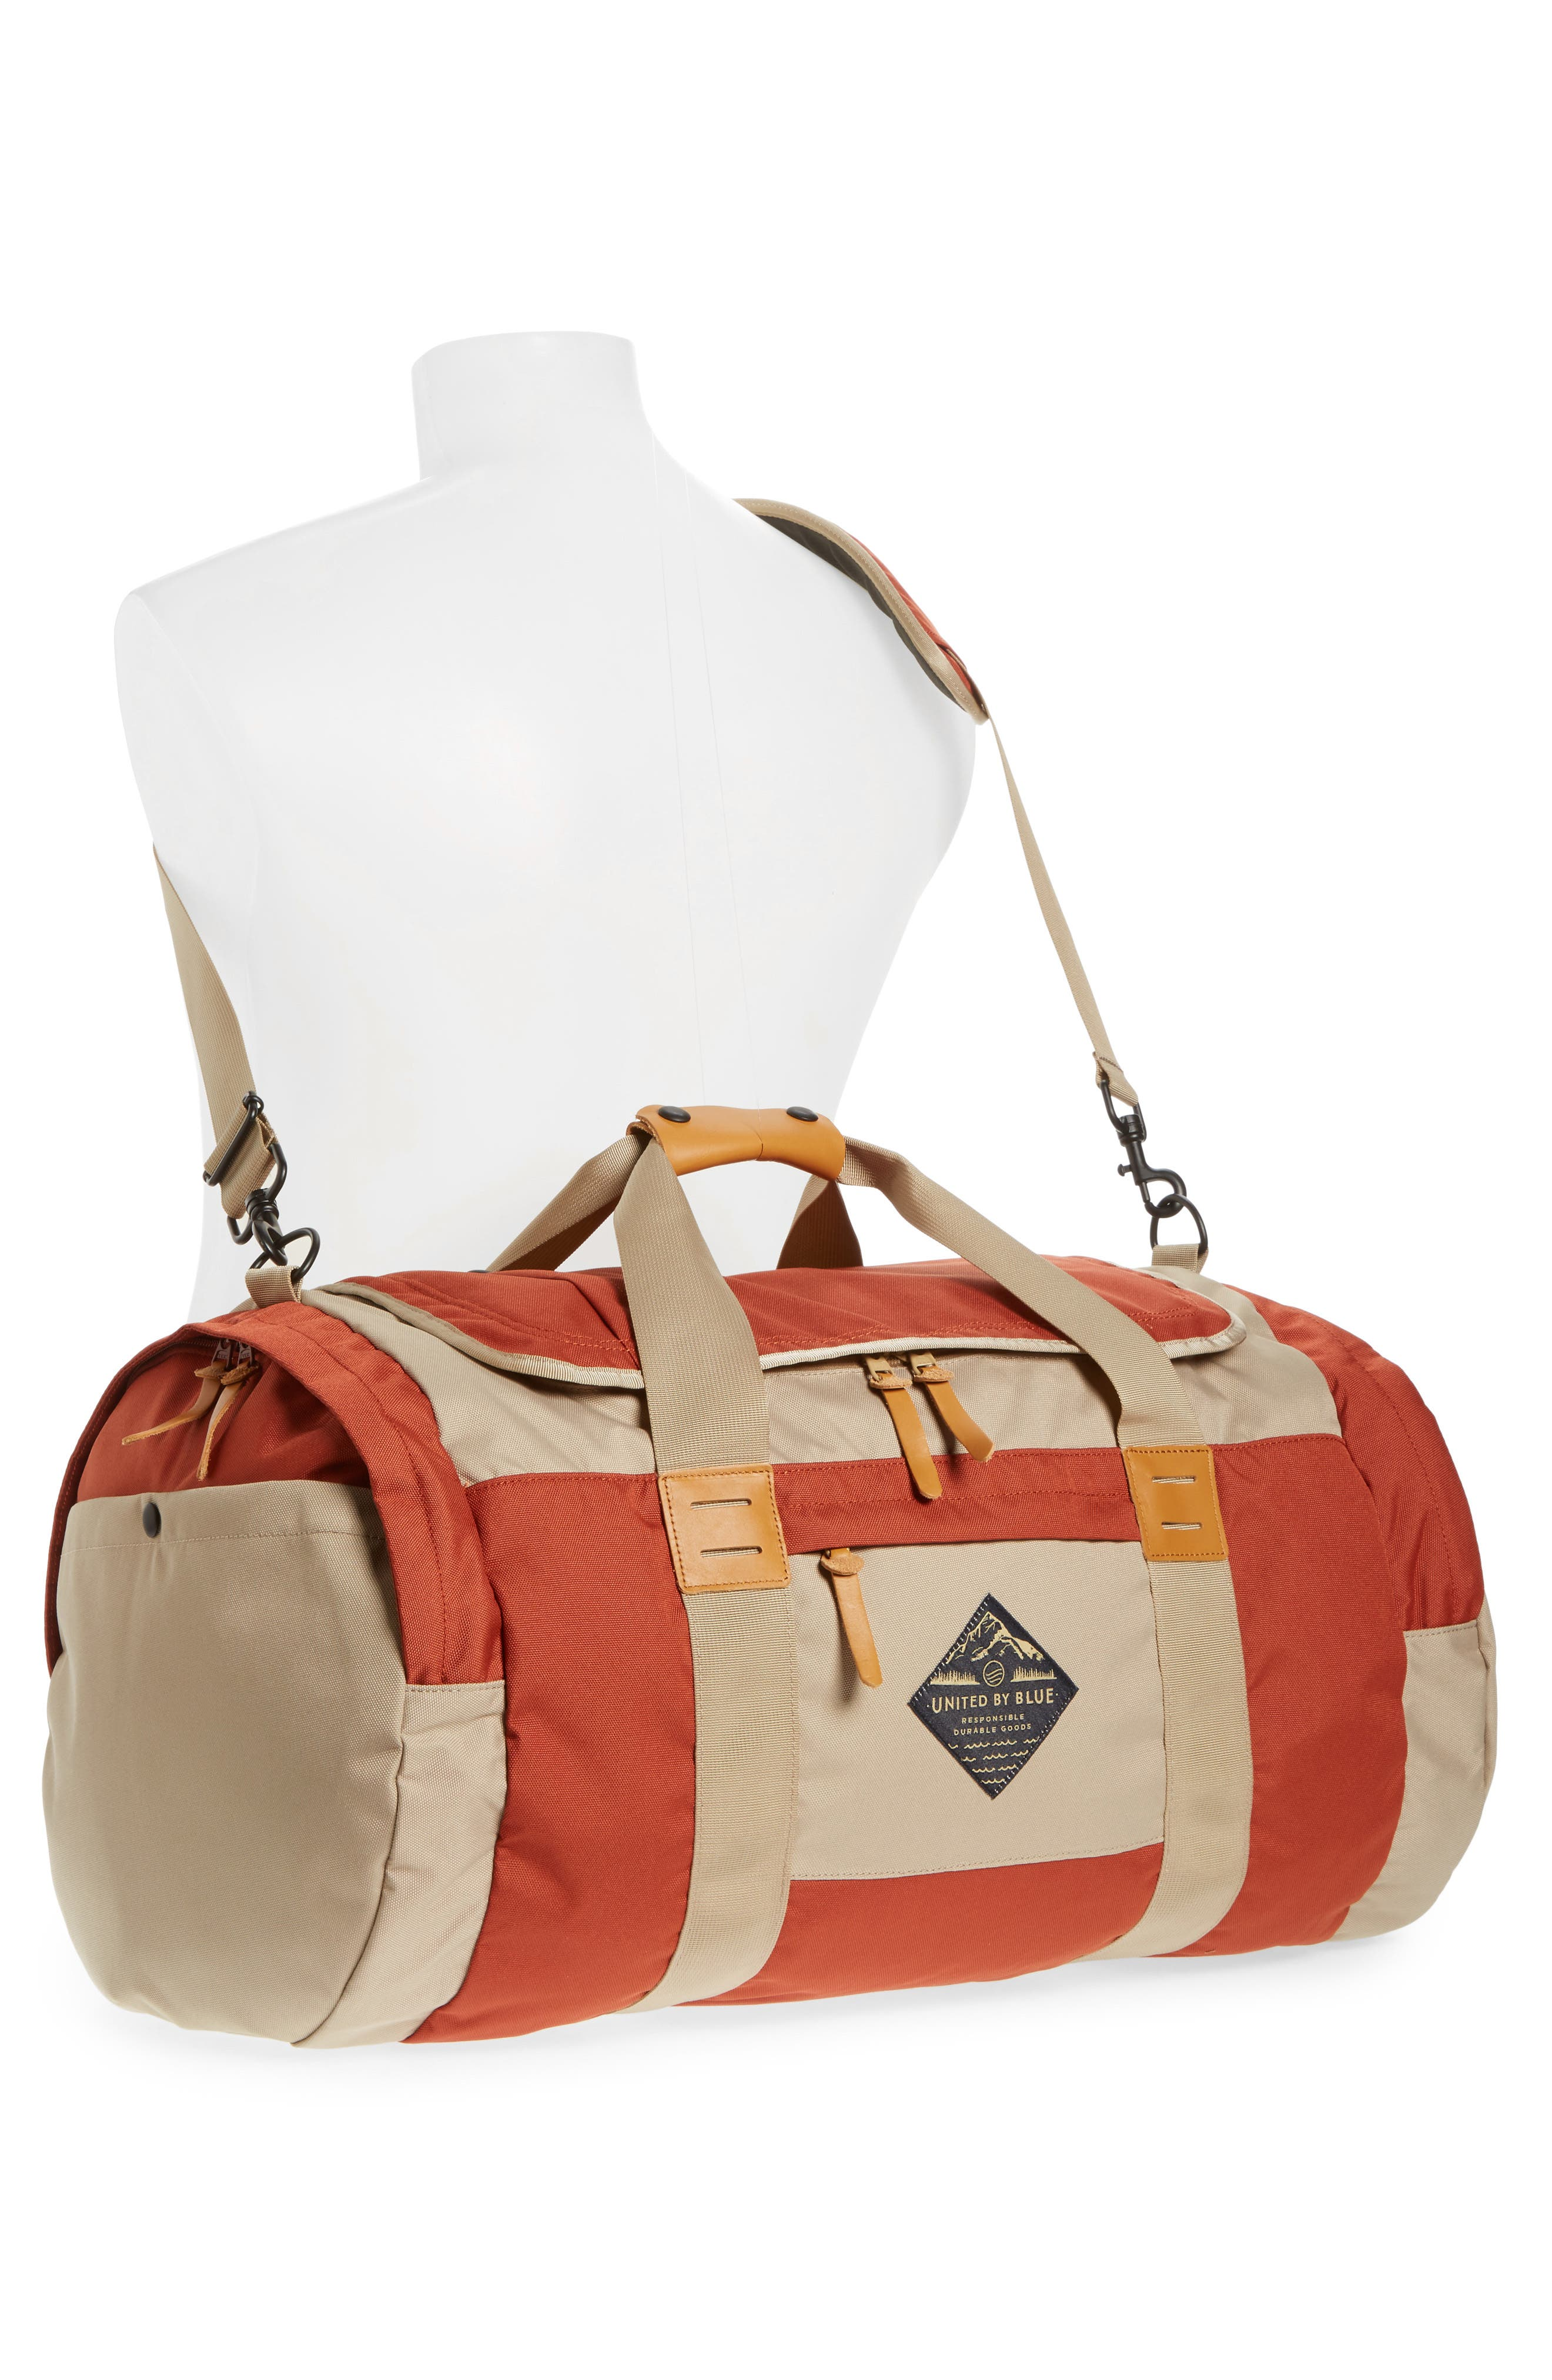 Arc Duffel Bag,                             Alternate thumbnail 2, color,                             Rust/ Tan